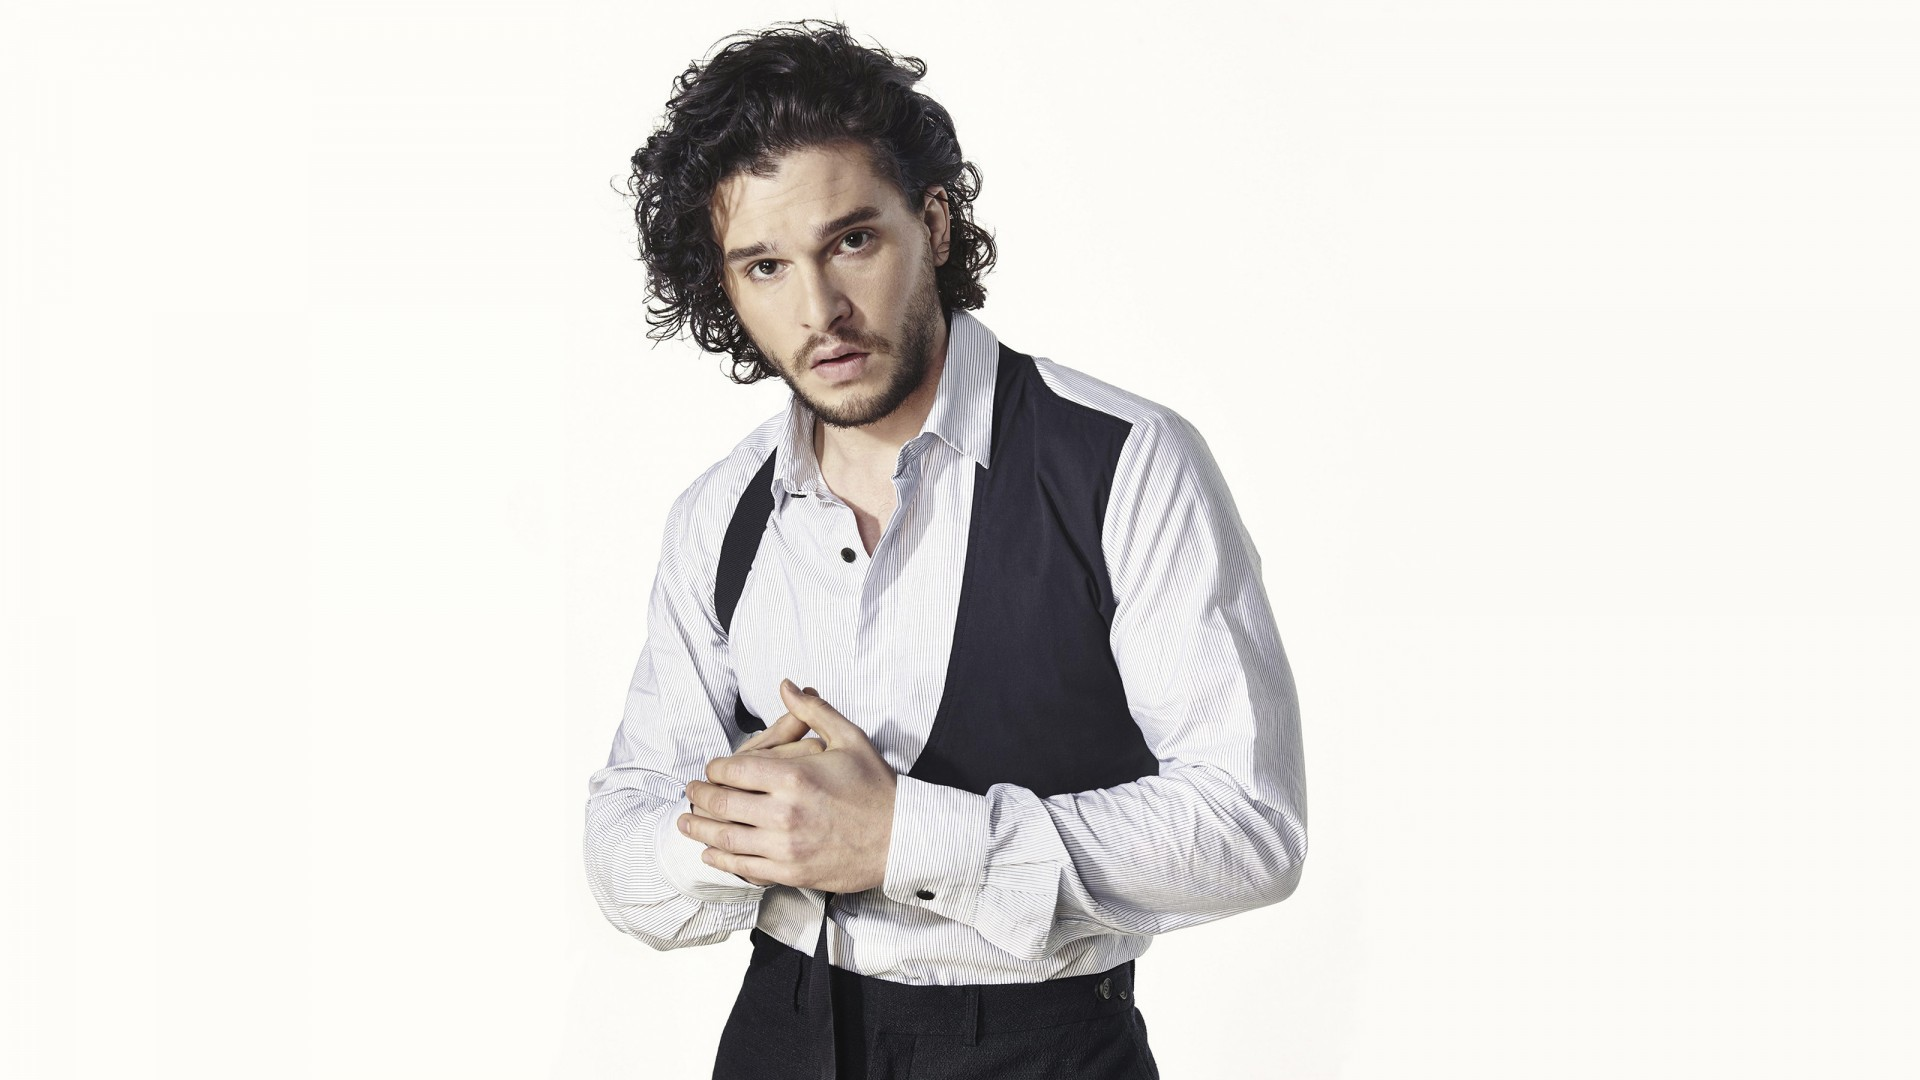 1920x1080 Wallpaper Kit Harington, English actor, Jon Snow, Game of Thrones,  Celebrities / Male, #937